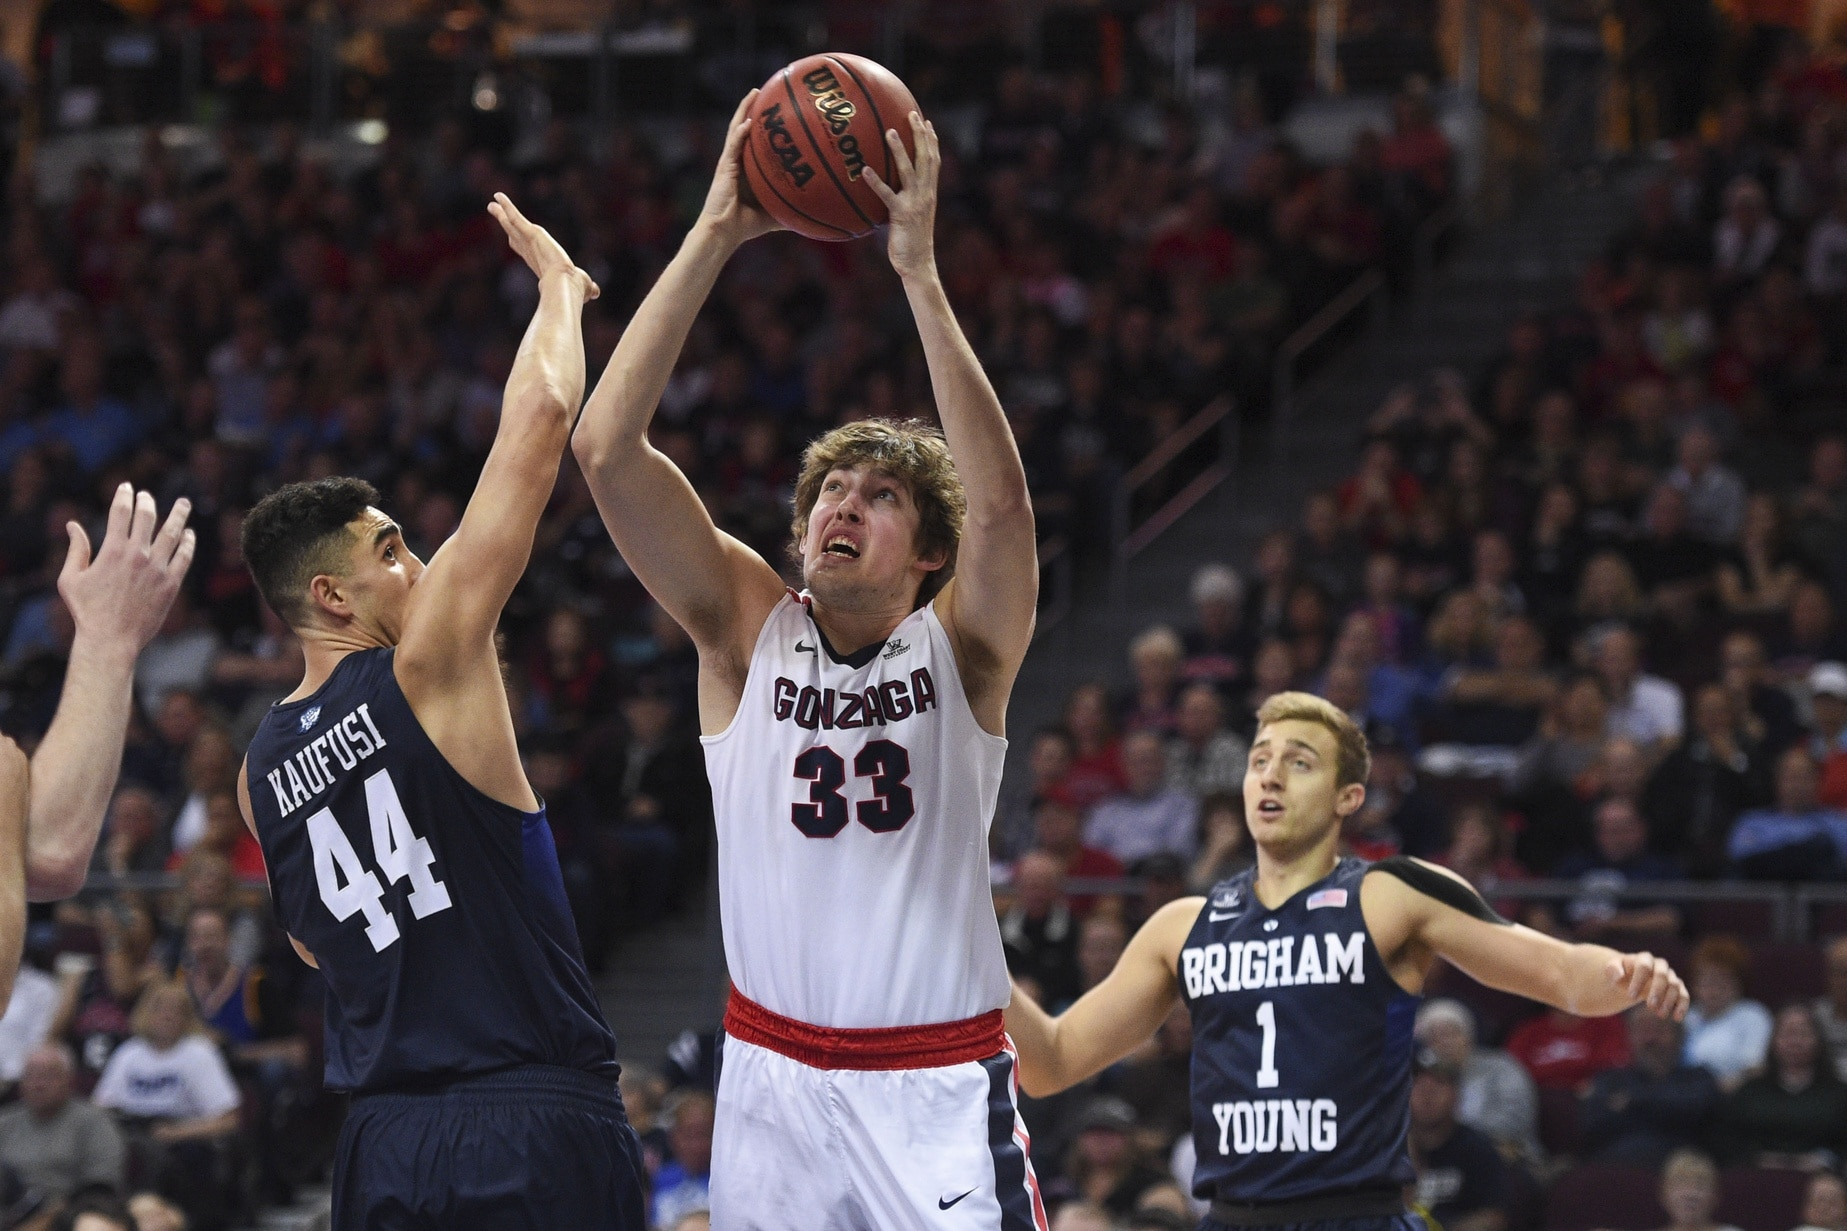 March 7, 2016; Las Vegas, NV, USA; Gonzaga Bulldogs forward Kyle Wiltjer (33) shoots the basketball against BYU Cougars center Corbin Kaufusi (44) and guard Chase Fischer (1) during the first half in the semifinals of the West Coast Conference tournament at Orleans Arena. Mandatory Credit: Kyle Terada-USA TODAY Sports